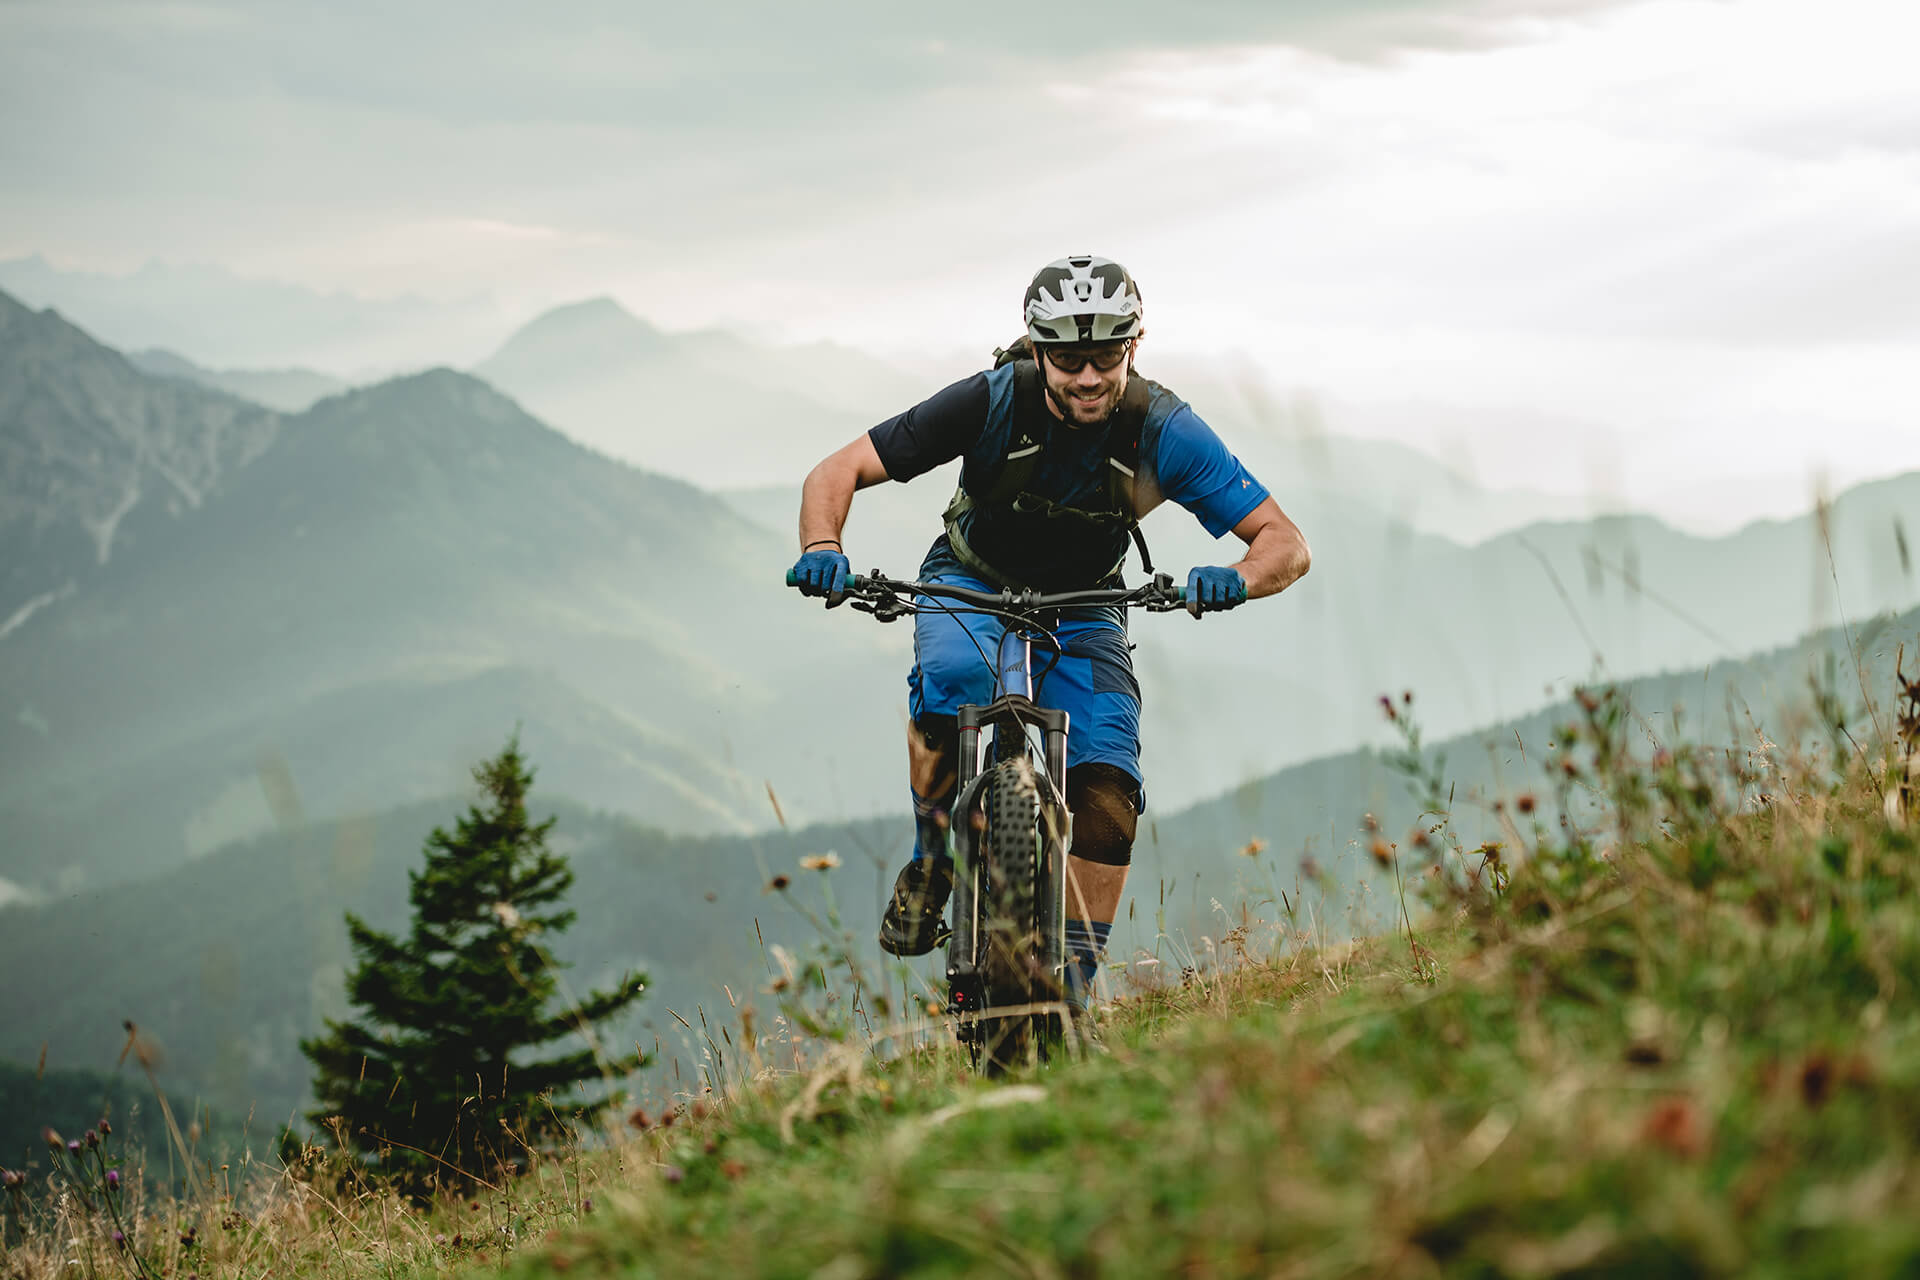 Haibike Hero Andi Wittmann riding in mountains